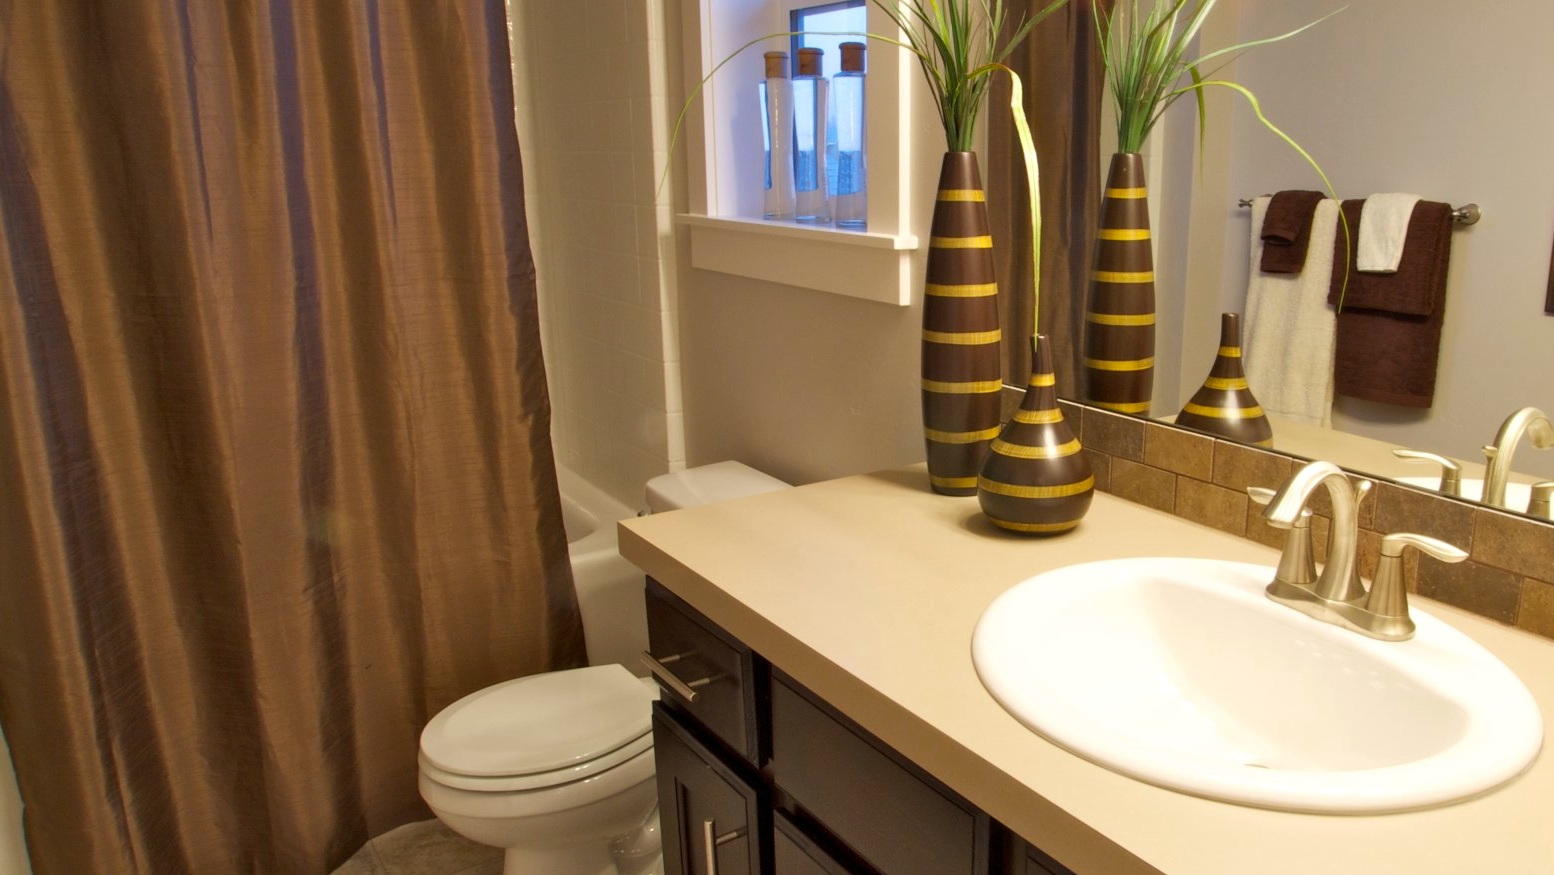 Bathroom storage ideas rental with innovative blue accent for Bathroom designs for small spaces south africa